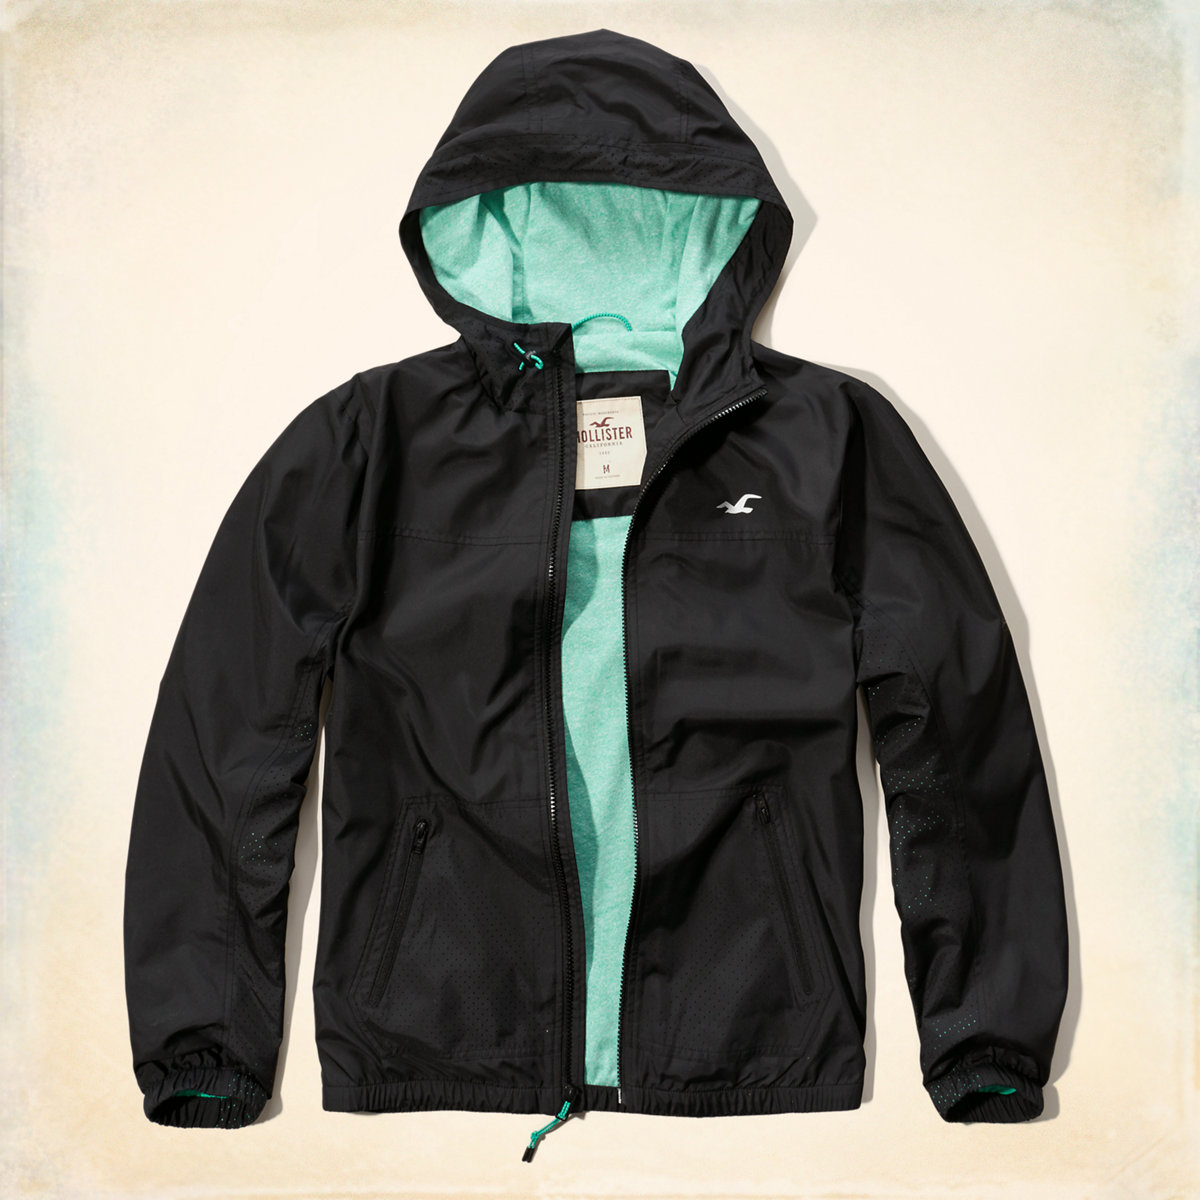 Lightweight Lined Windbreaker